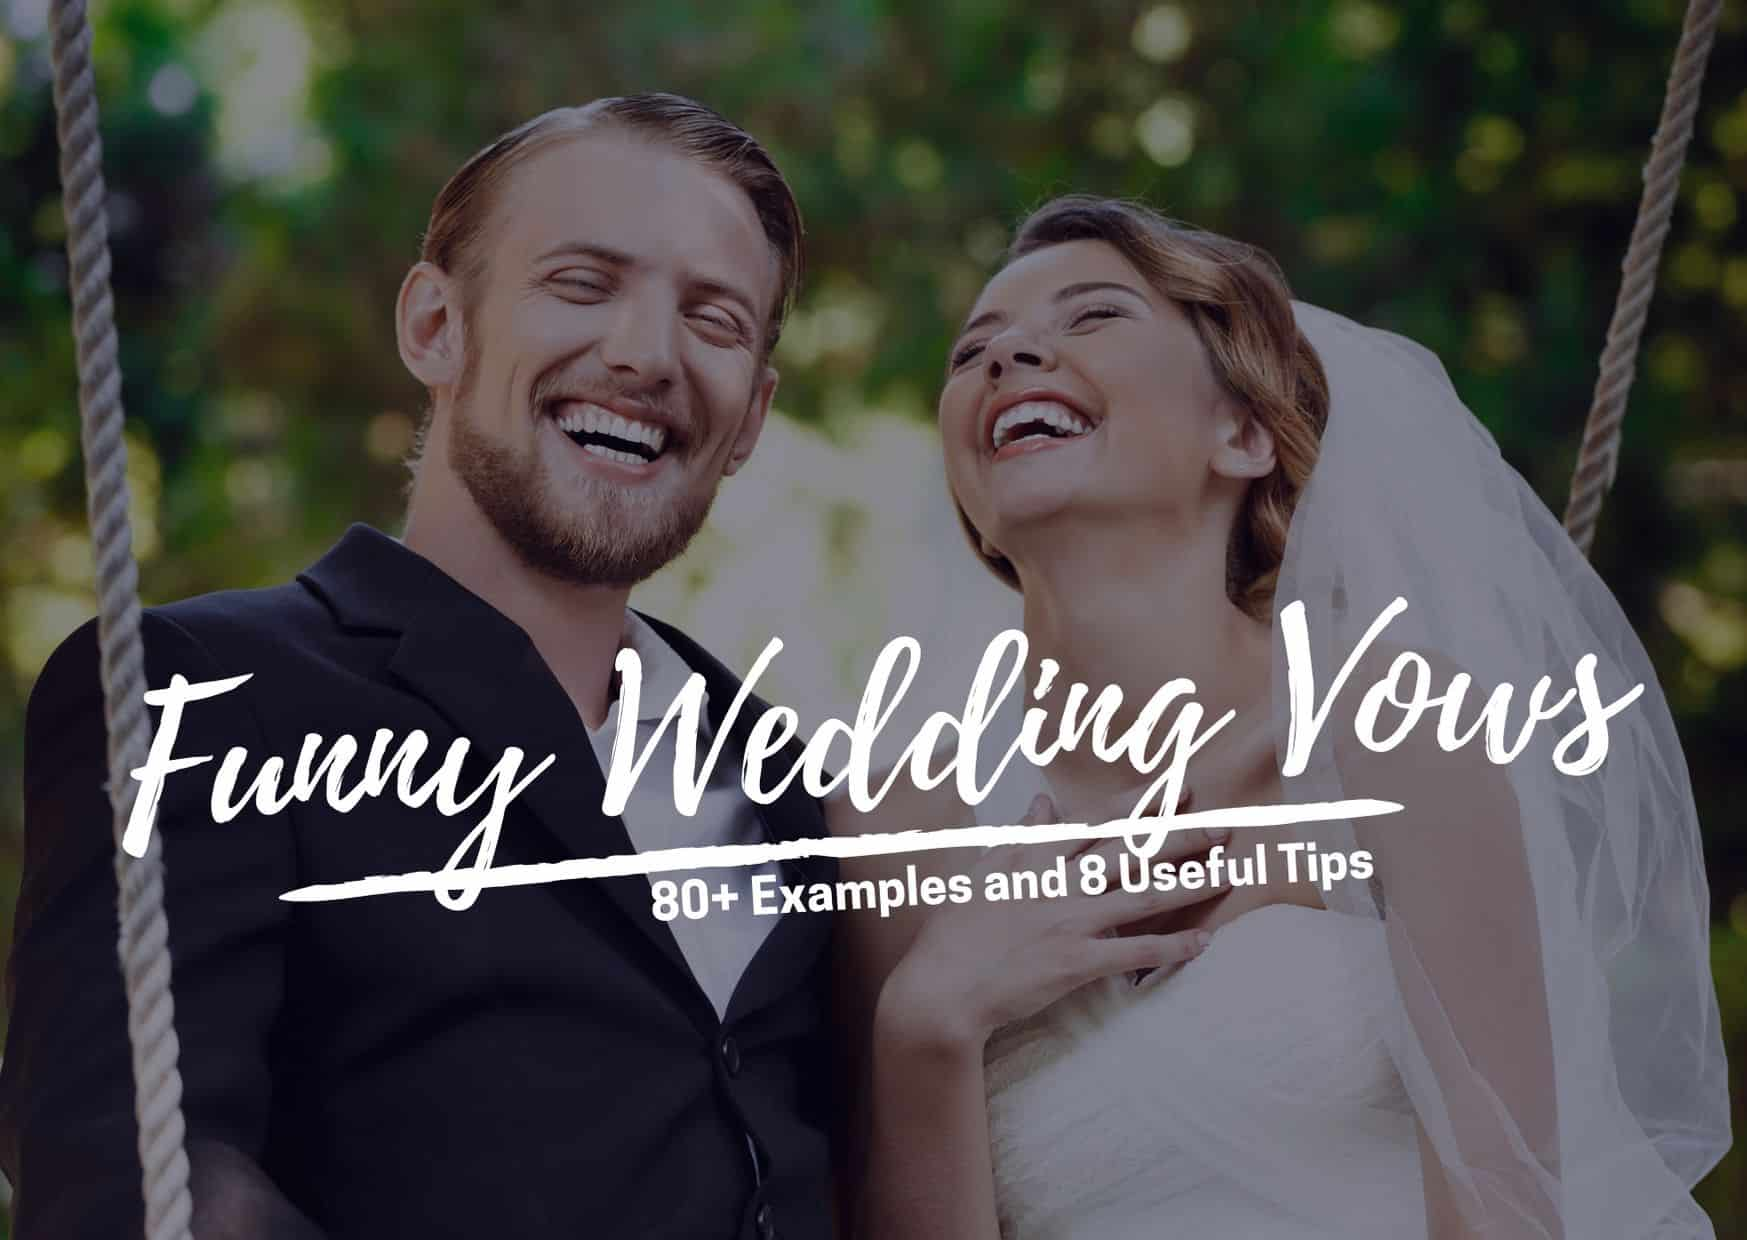 Funny Wedding Vows Examples and Tips on Crafting Your Own Hilarious Ones